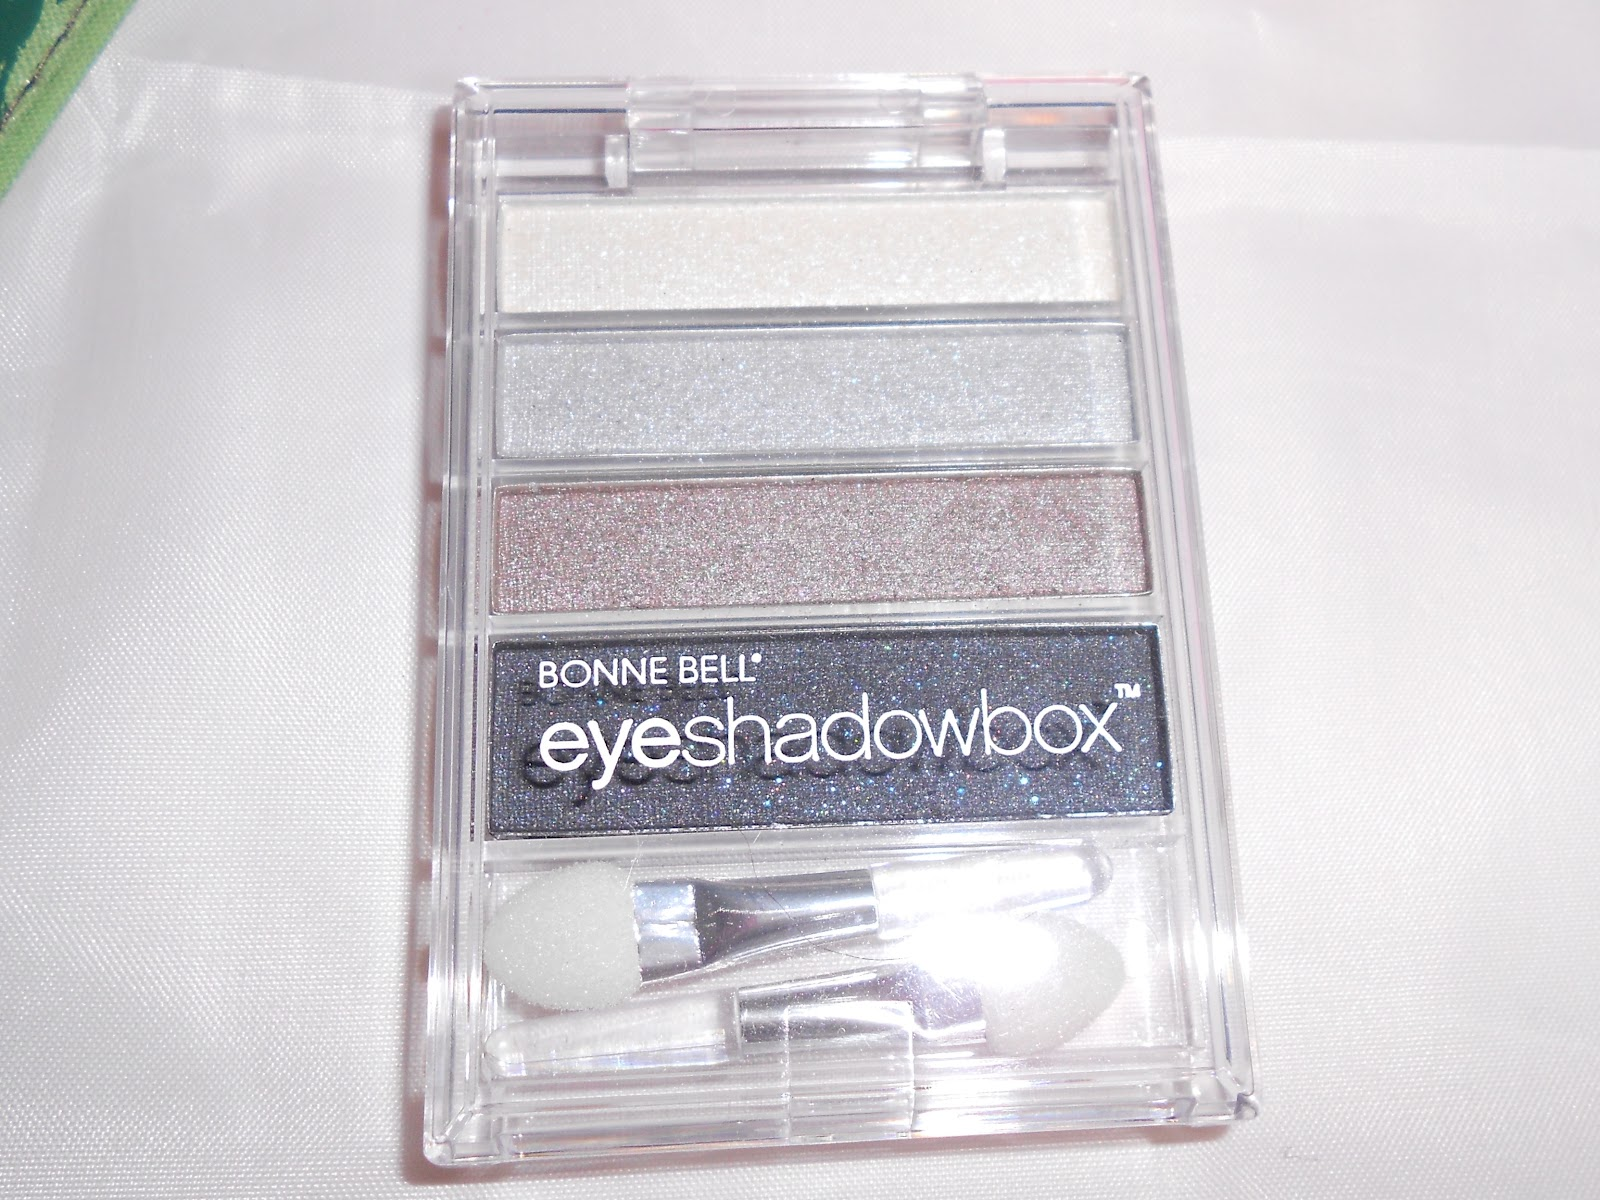 bonne bell eyeshadow box